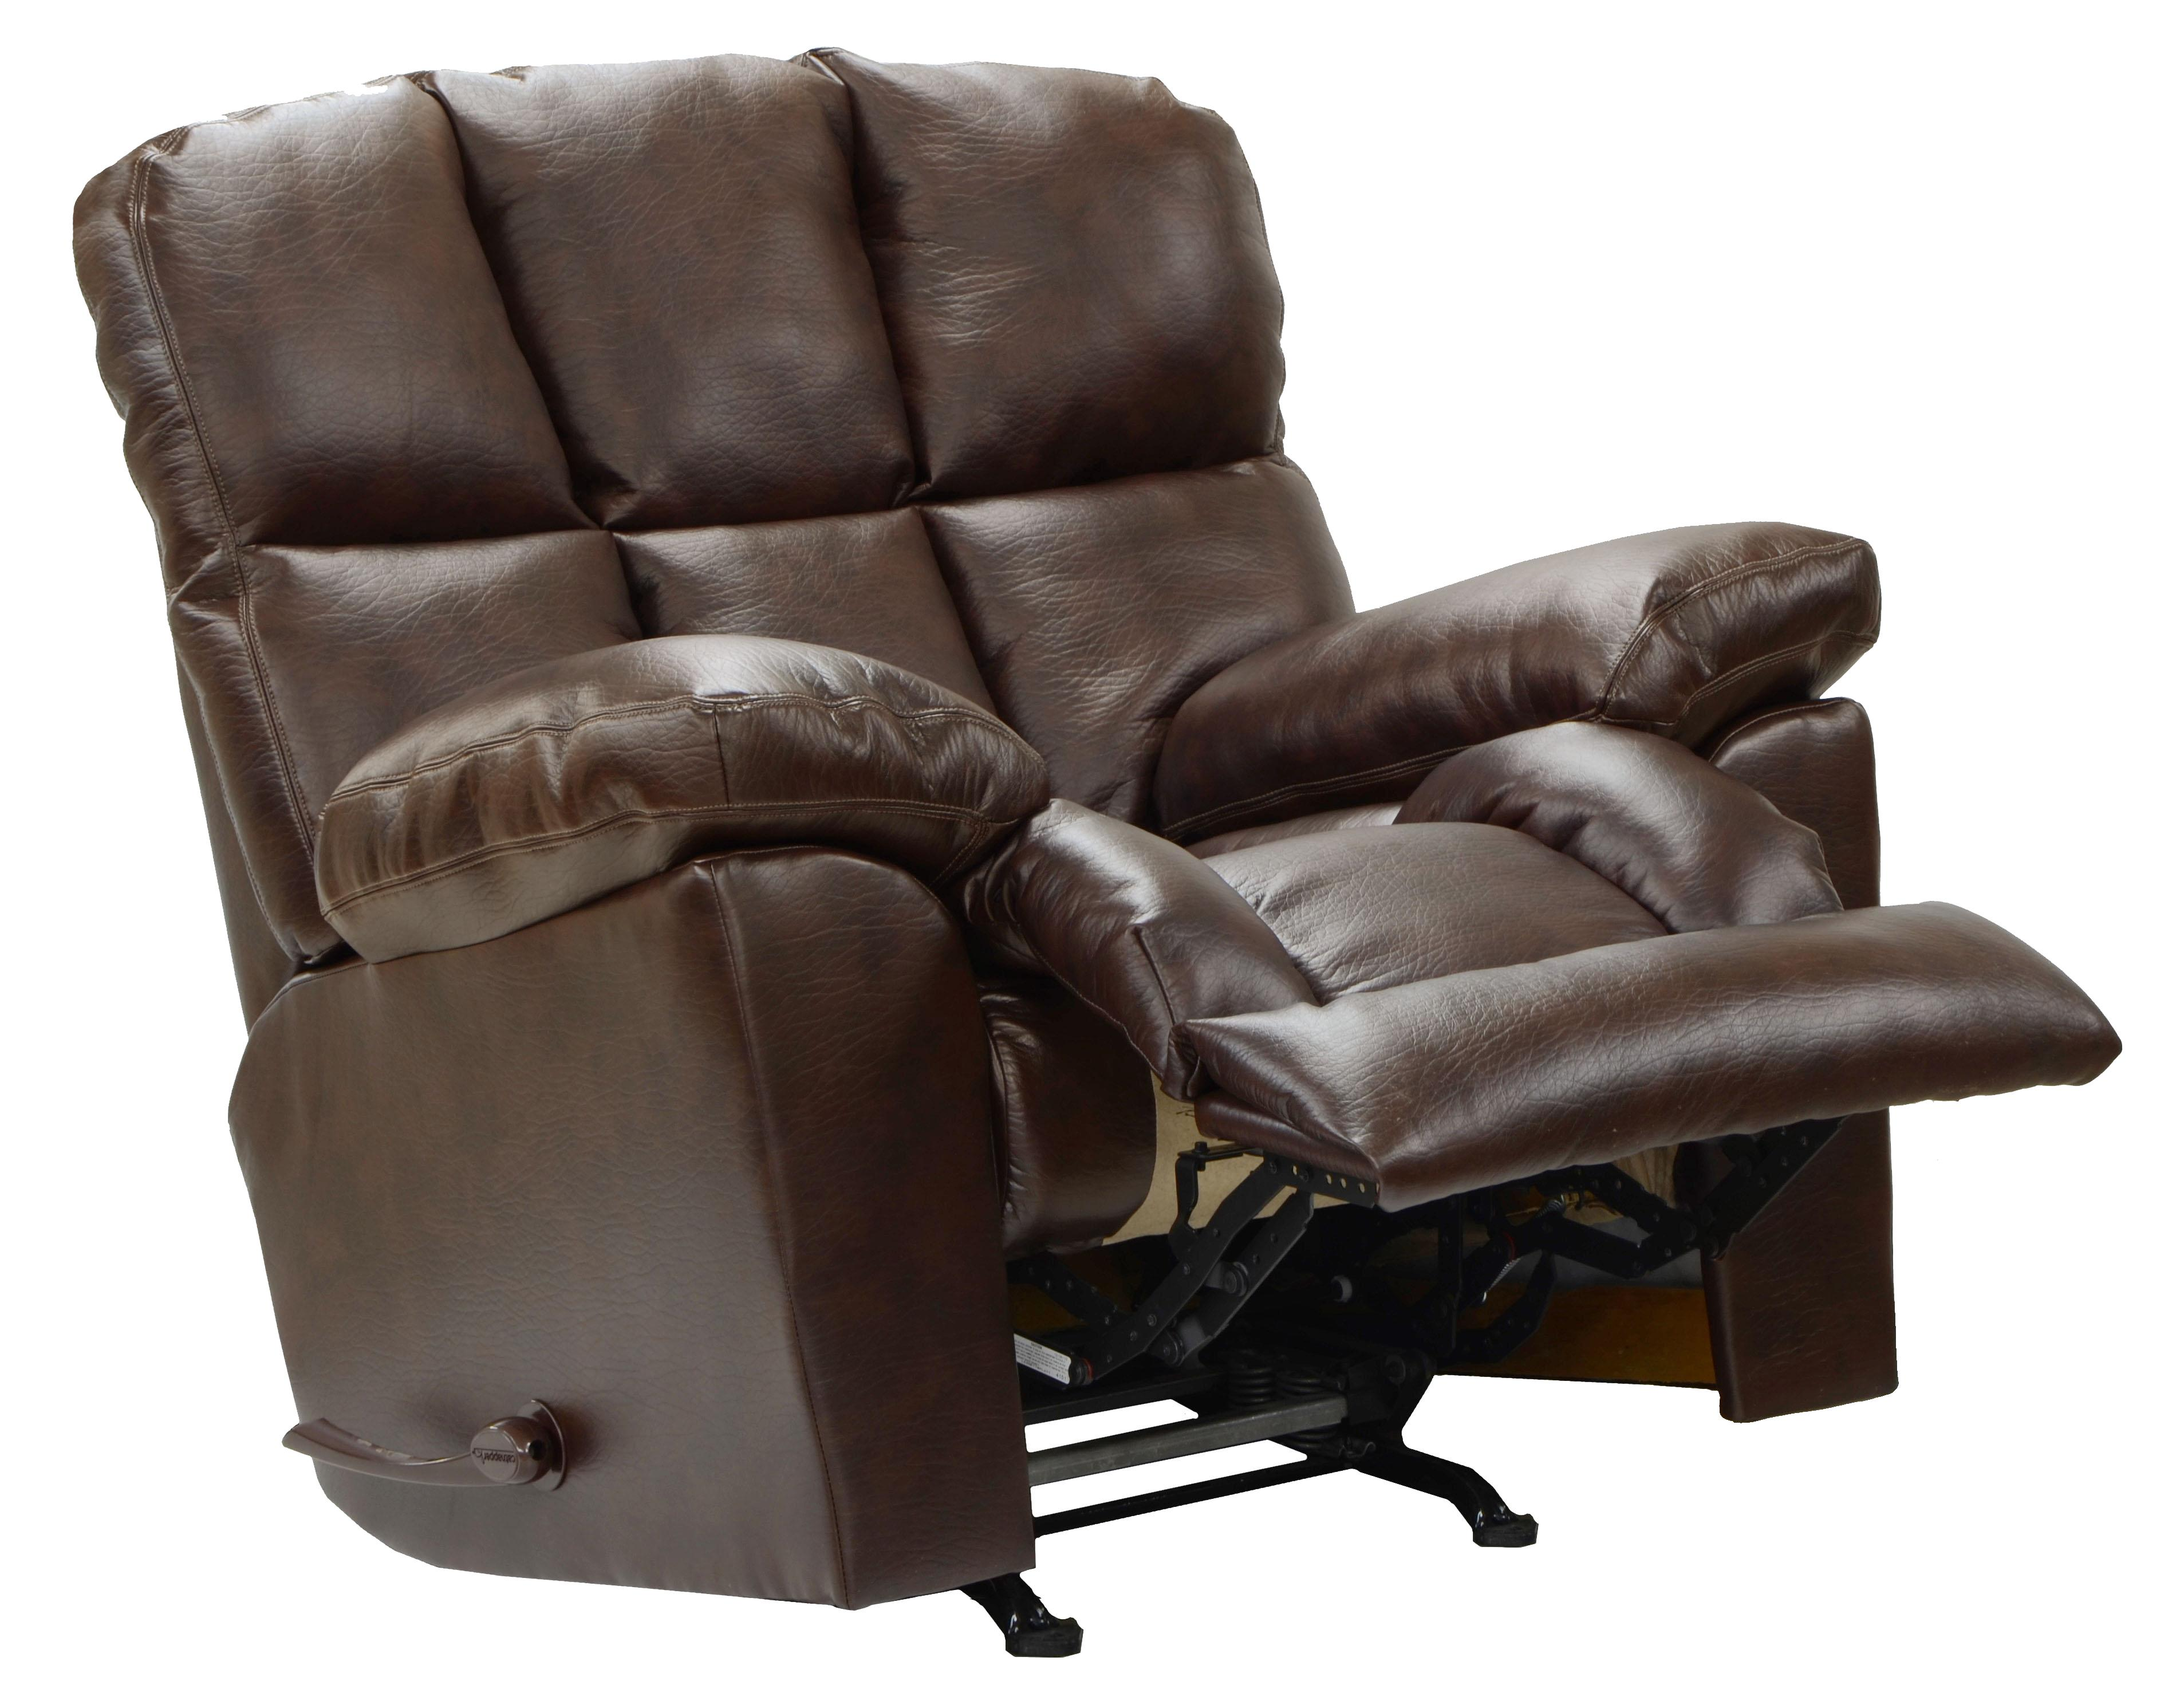 Griffey Power Lay Flat Recliner